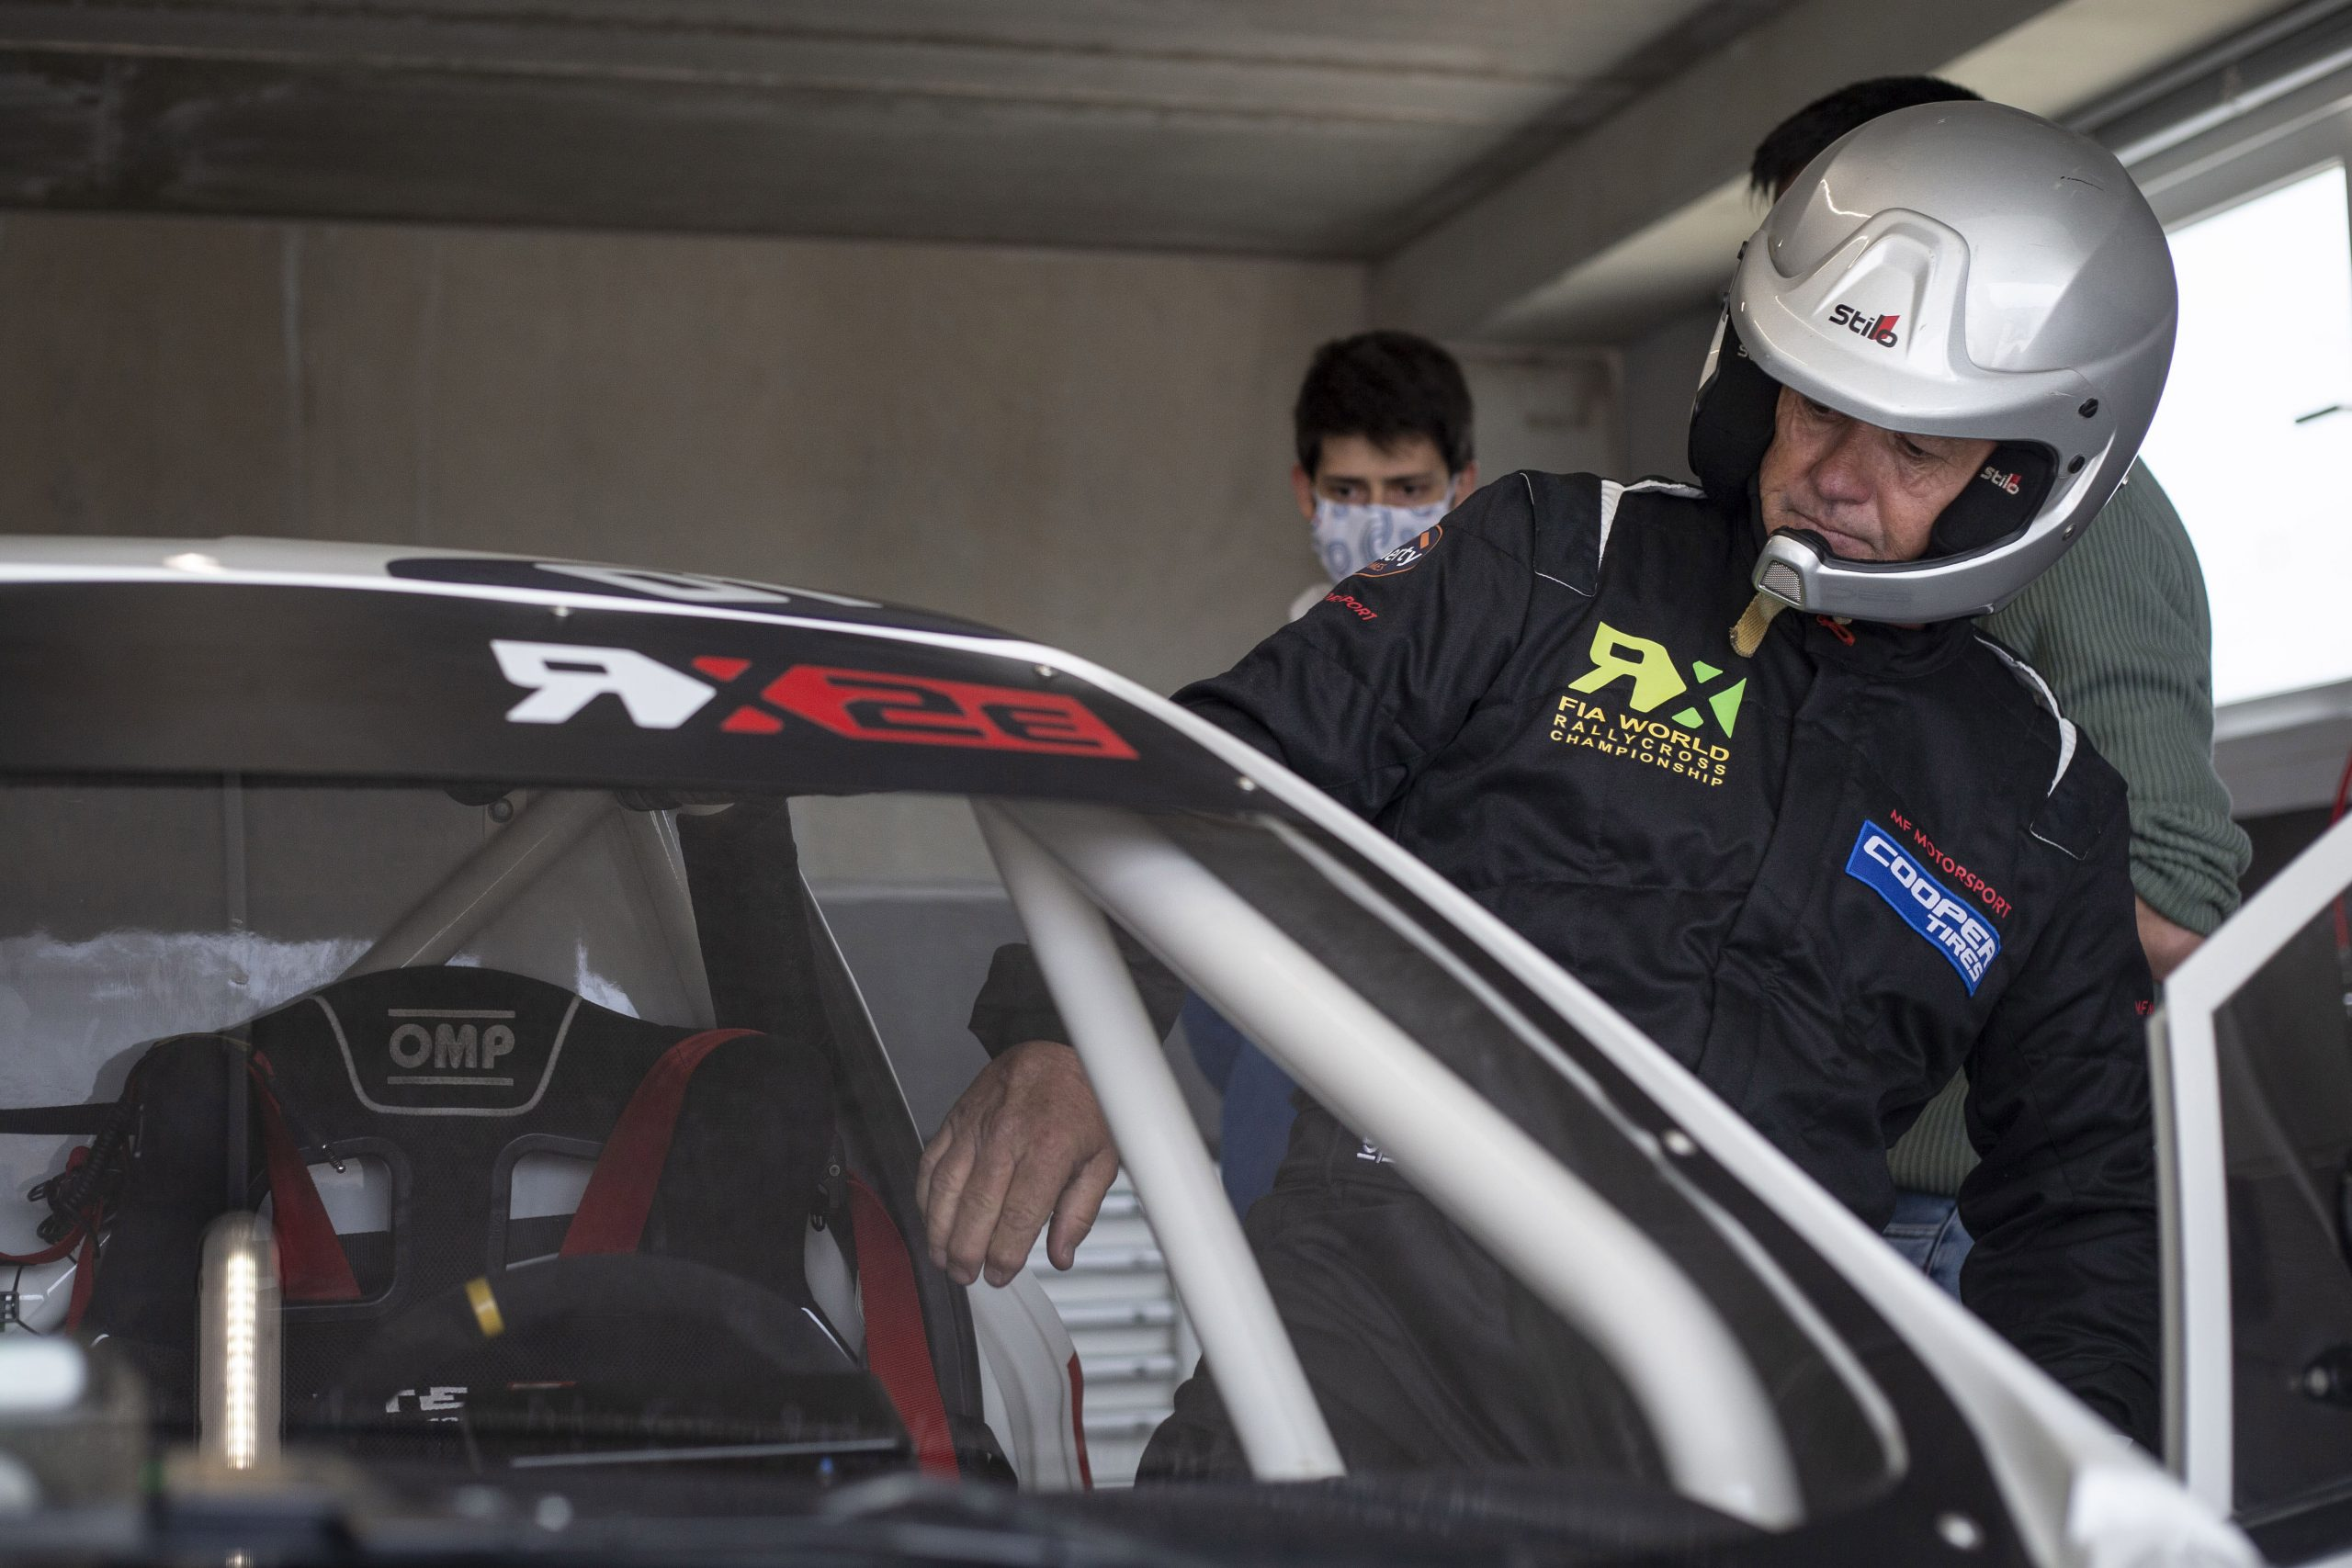 Flaherty enters the fray with British ace ready to push FIA RX2e car to the limit in Barcelona, QEV